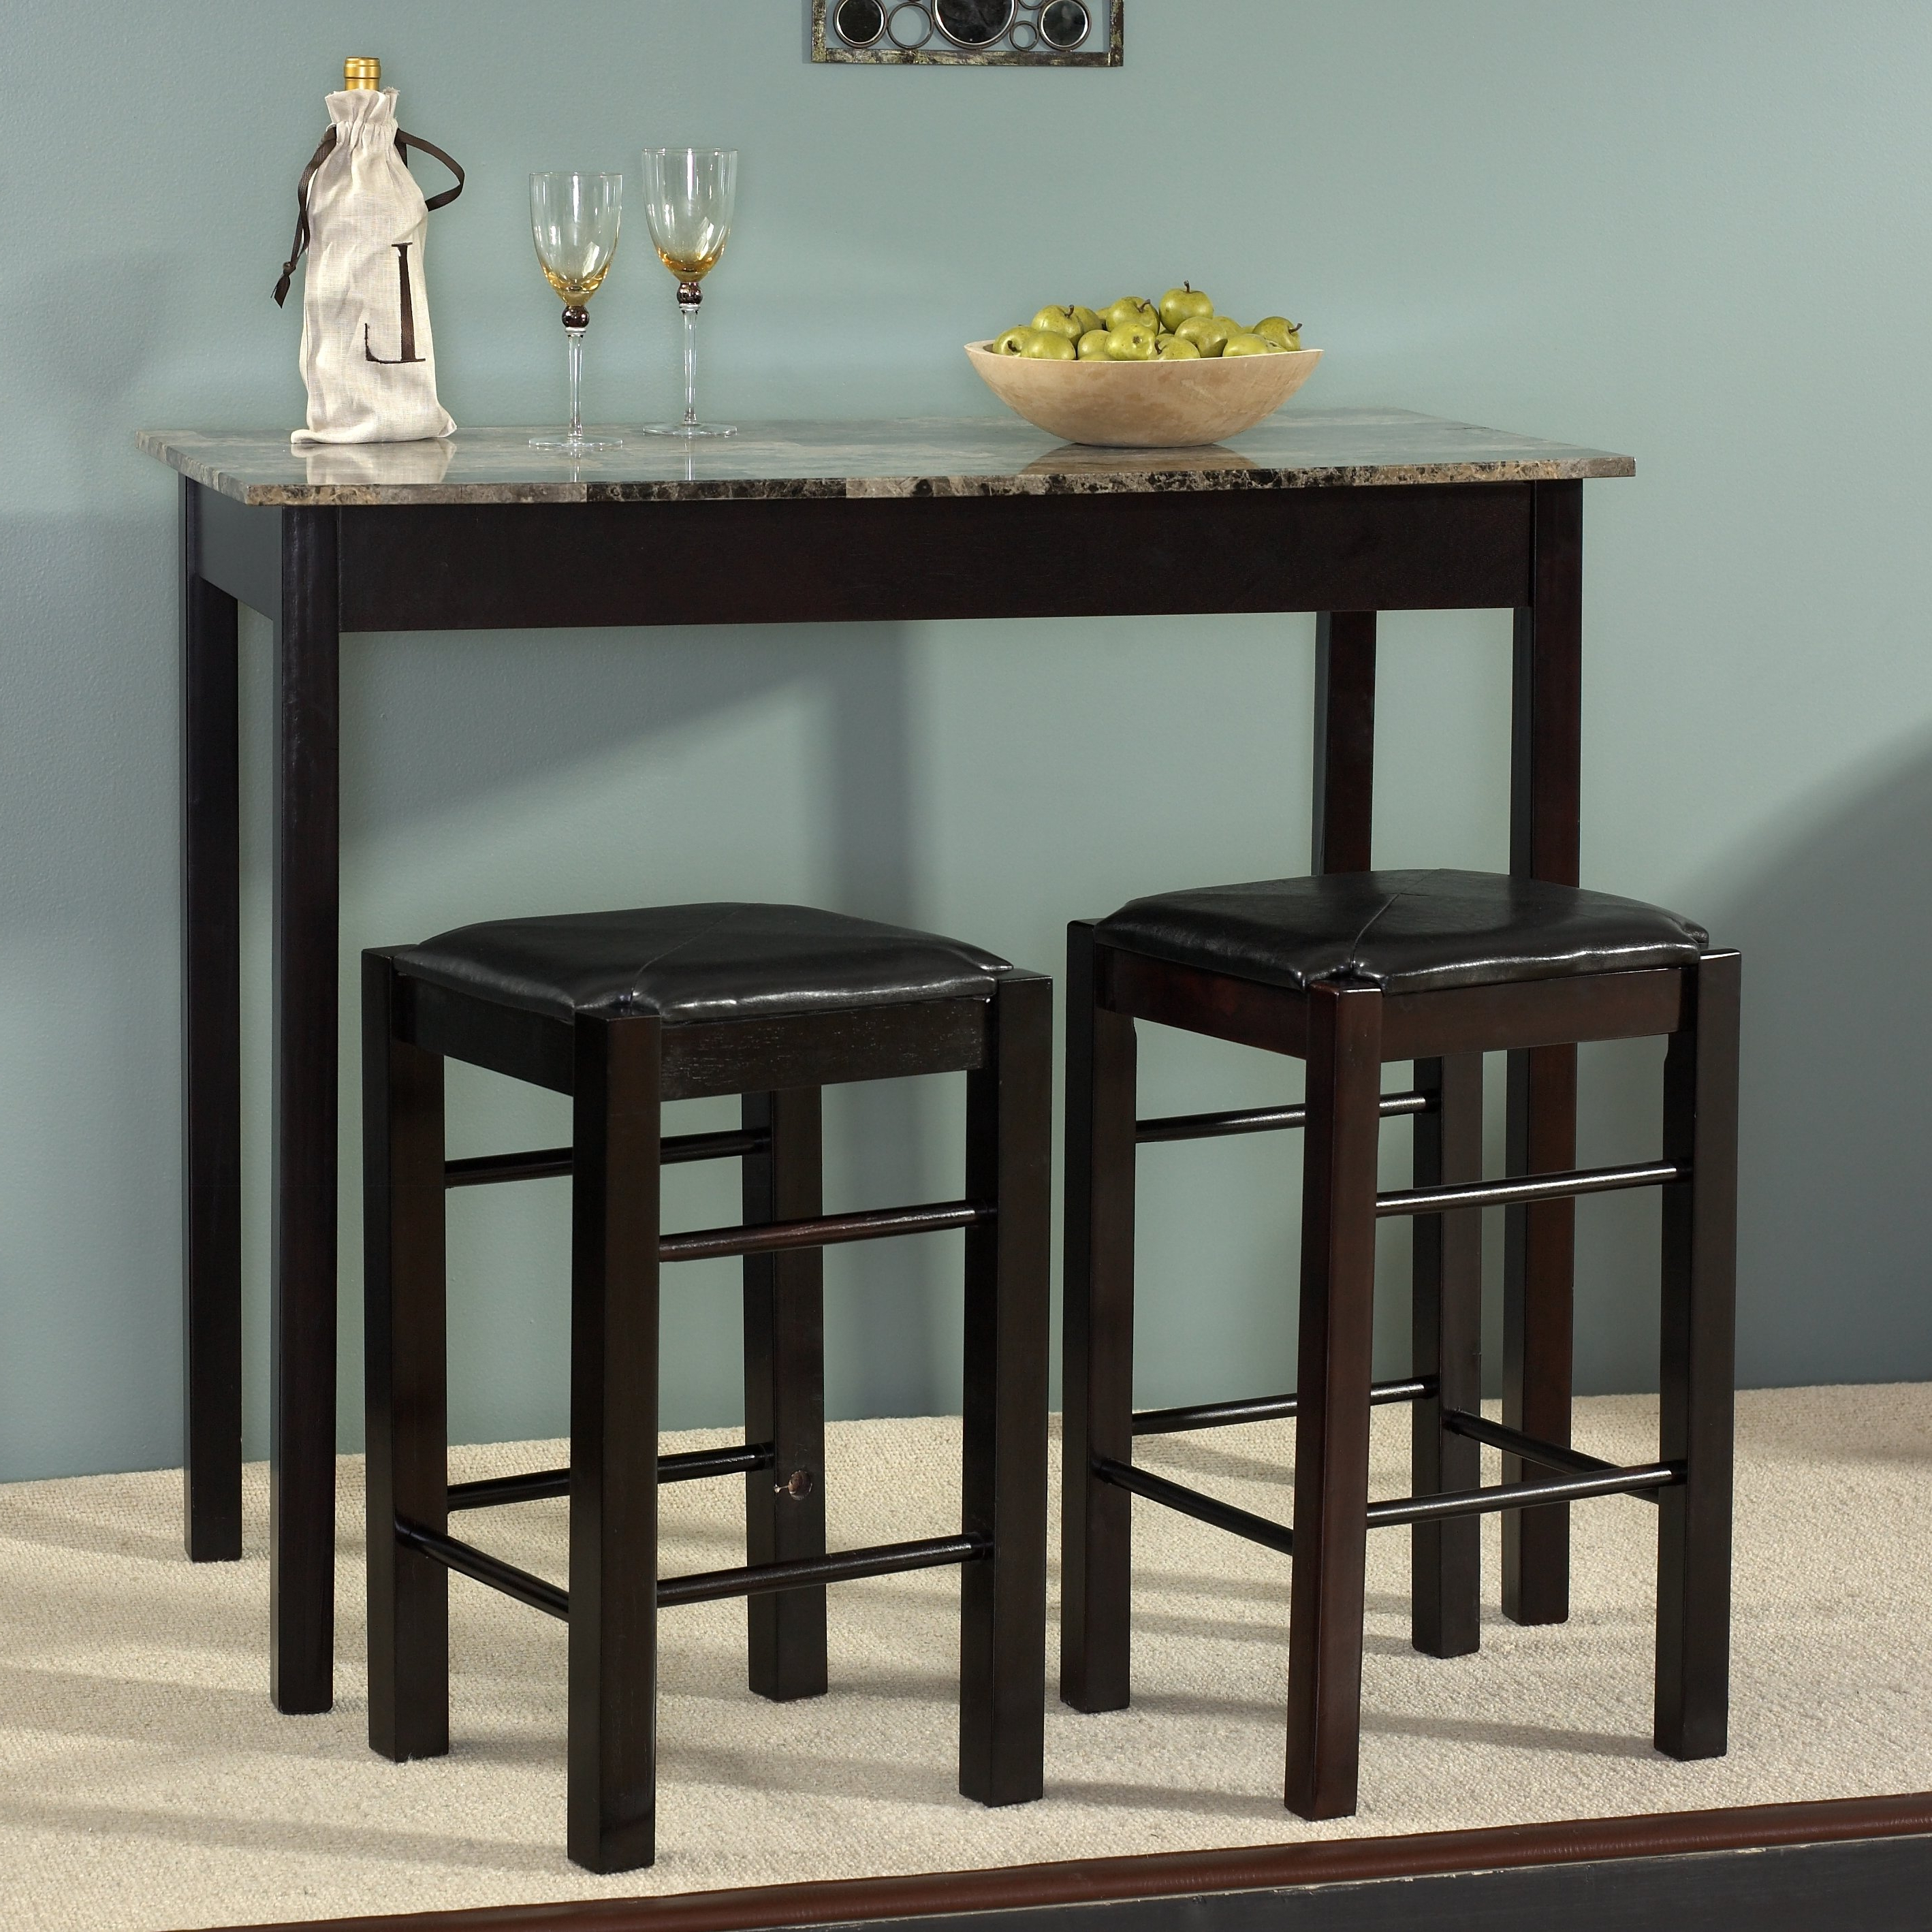 Winston Porter Sheetz 3 Piece Counter Height Dining Set Intended For Most Up To Date Berrios 3 Piece Counter Height Dining Sets (View 20 of 20)